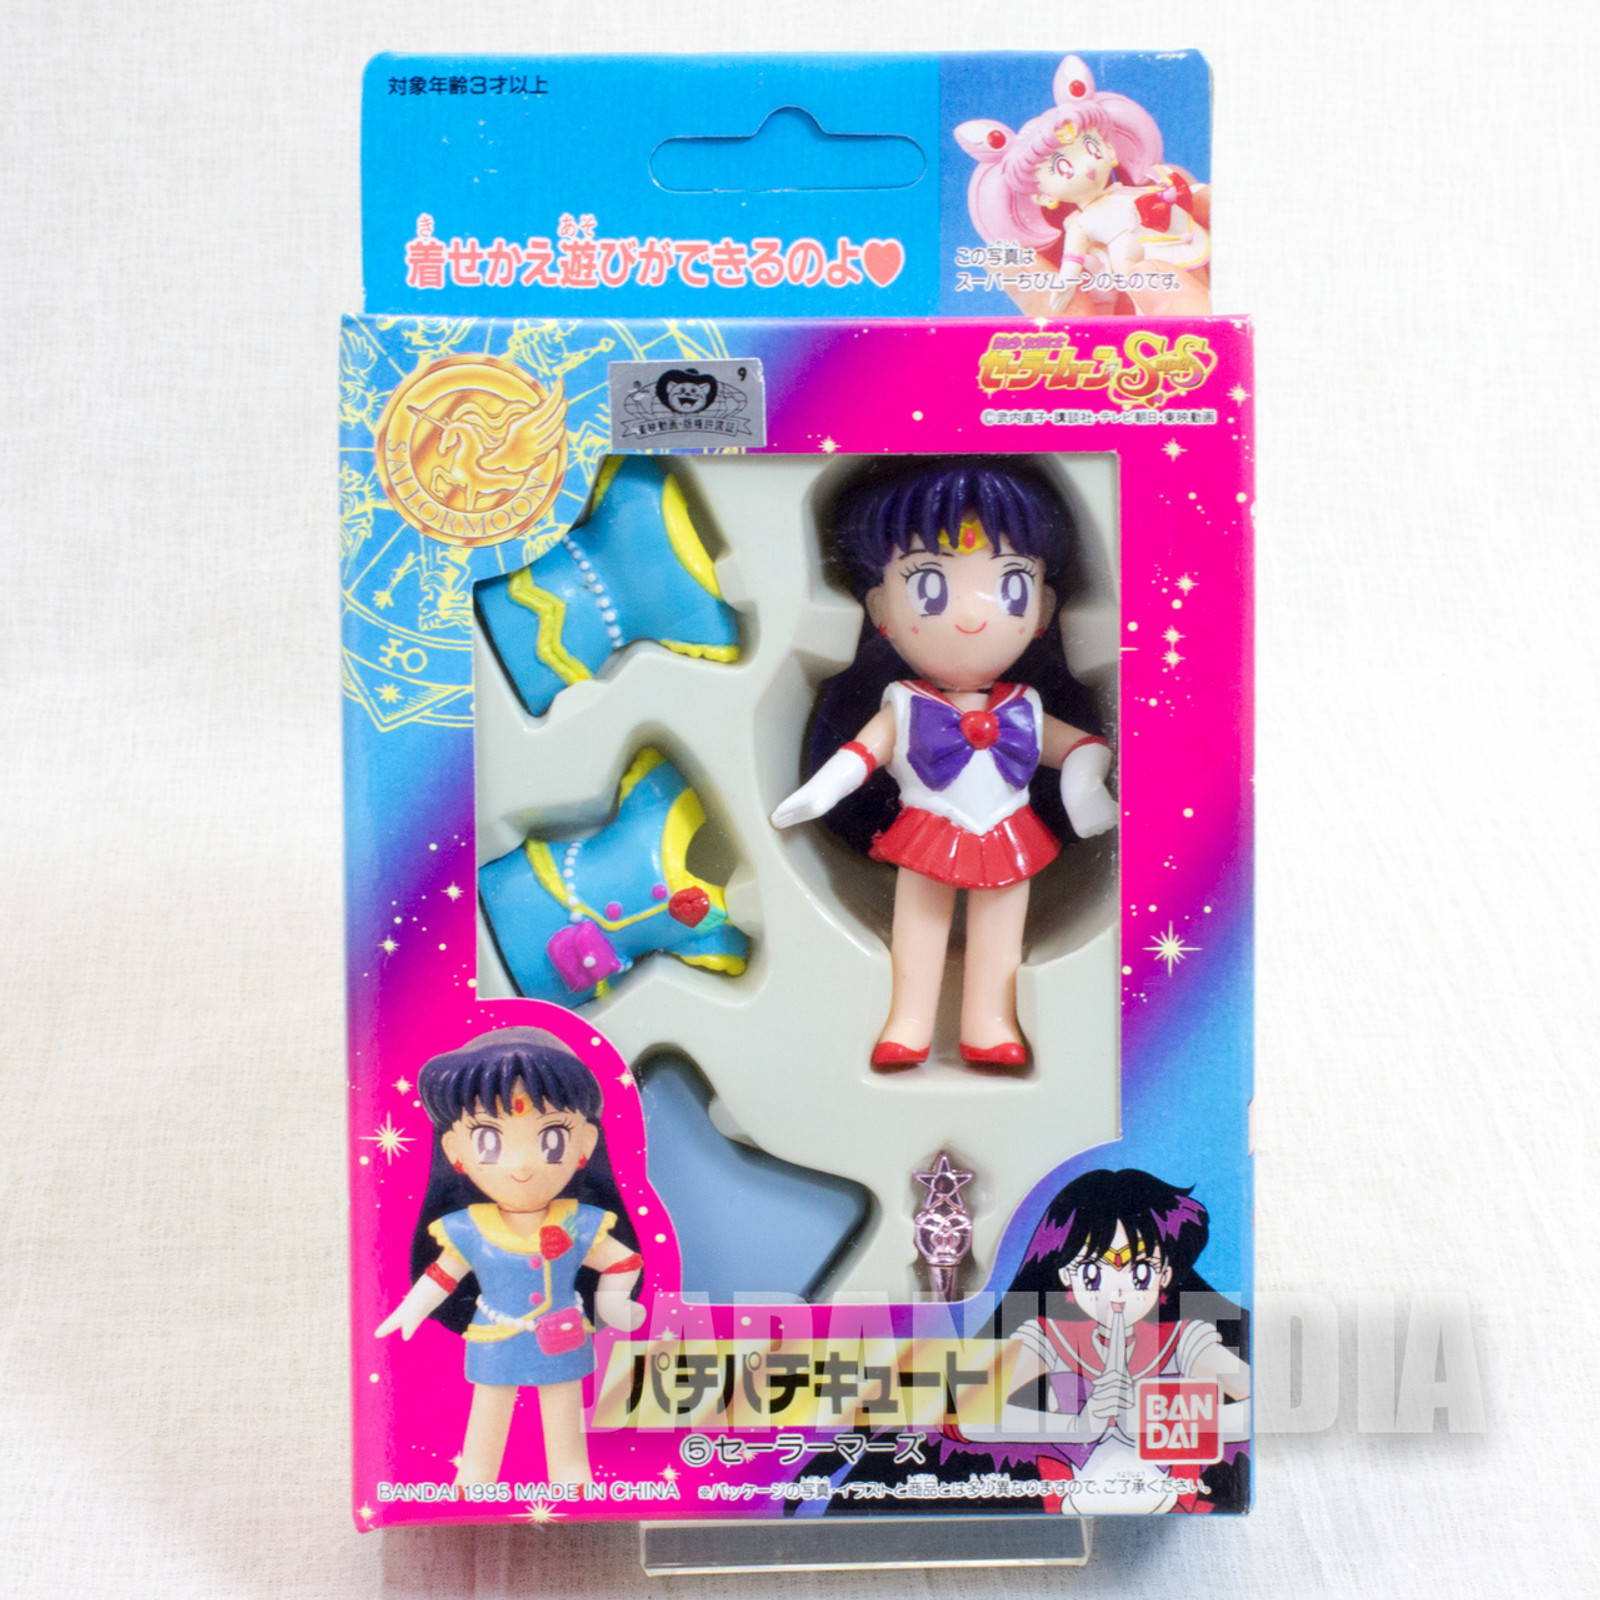 Retro RARE Sailor Moon Sailor Mars (Rei Hino) PachiPachi Cute Figure BANDAI JAPAN